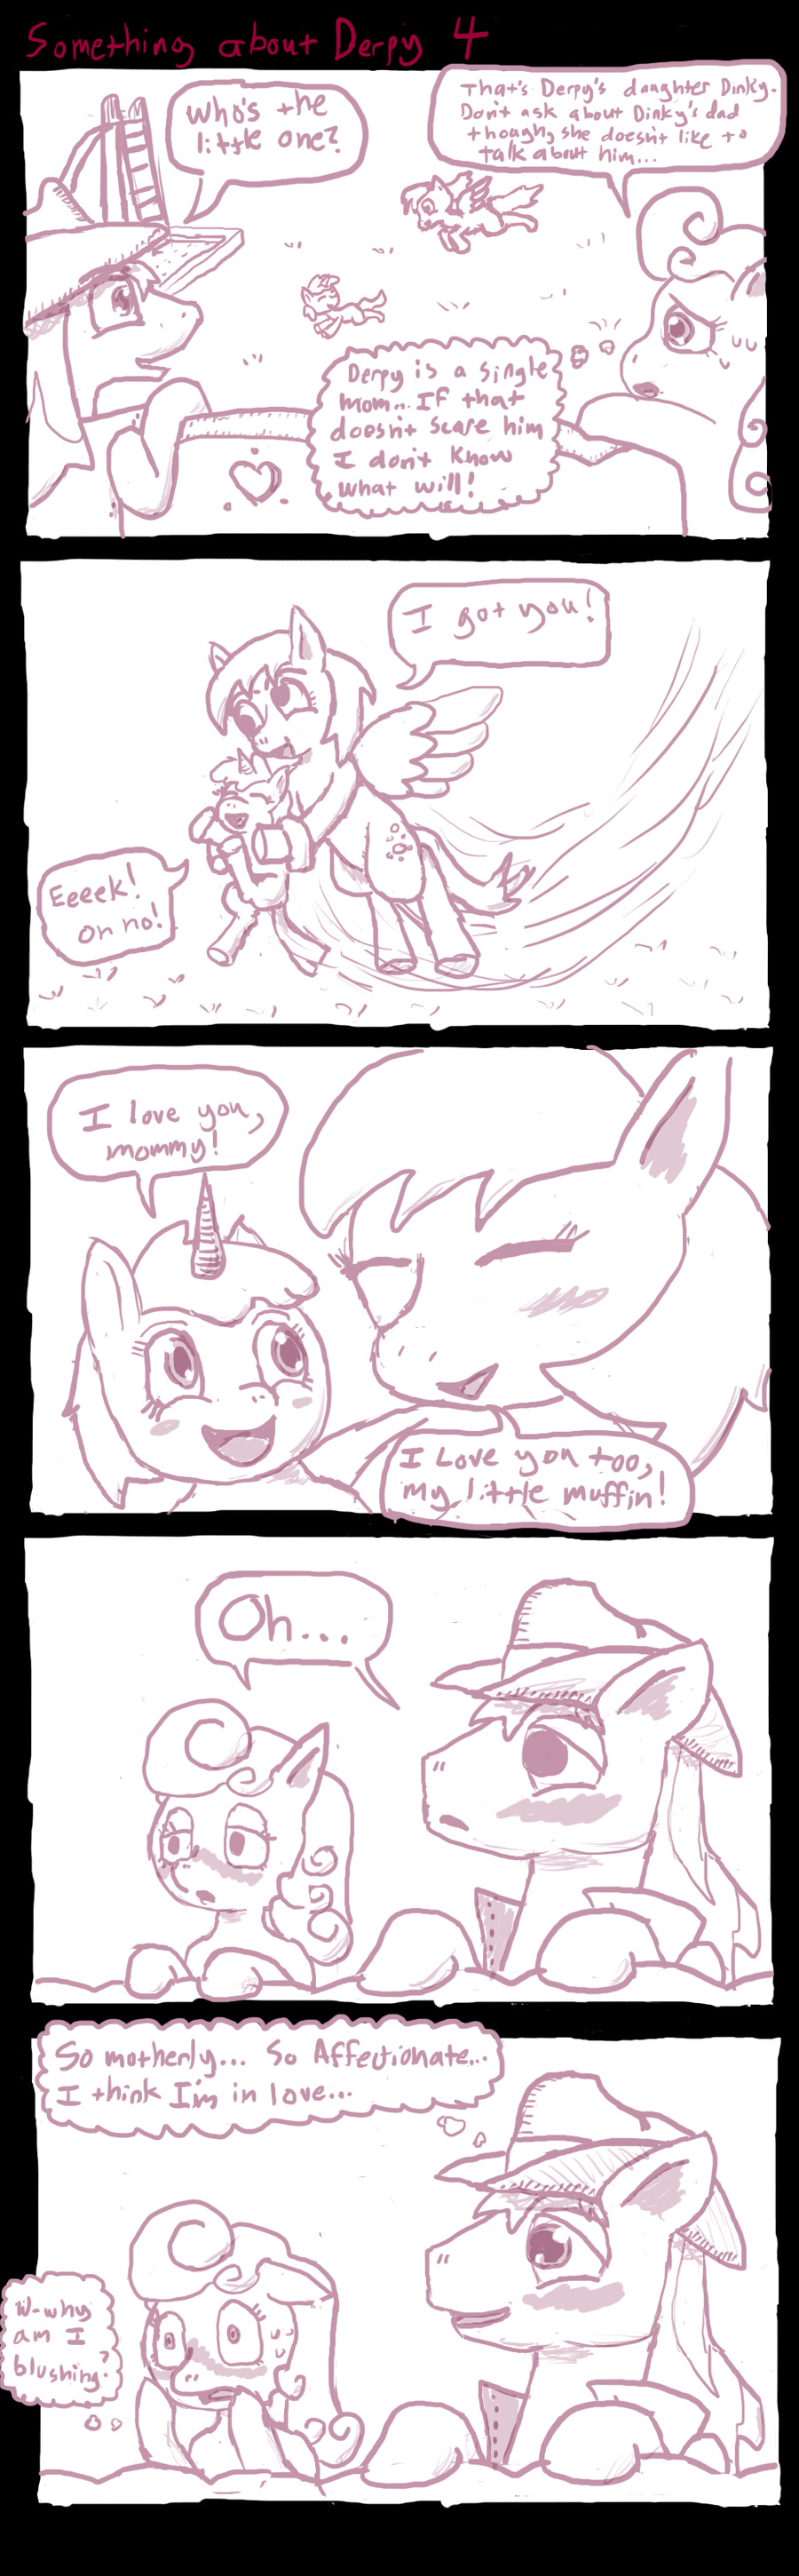 Something About Derpy 4 by FicFicPonyFic